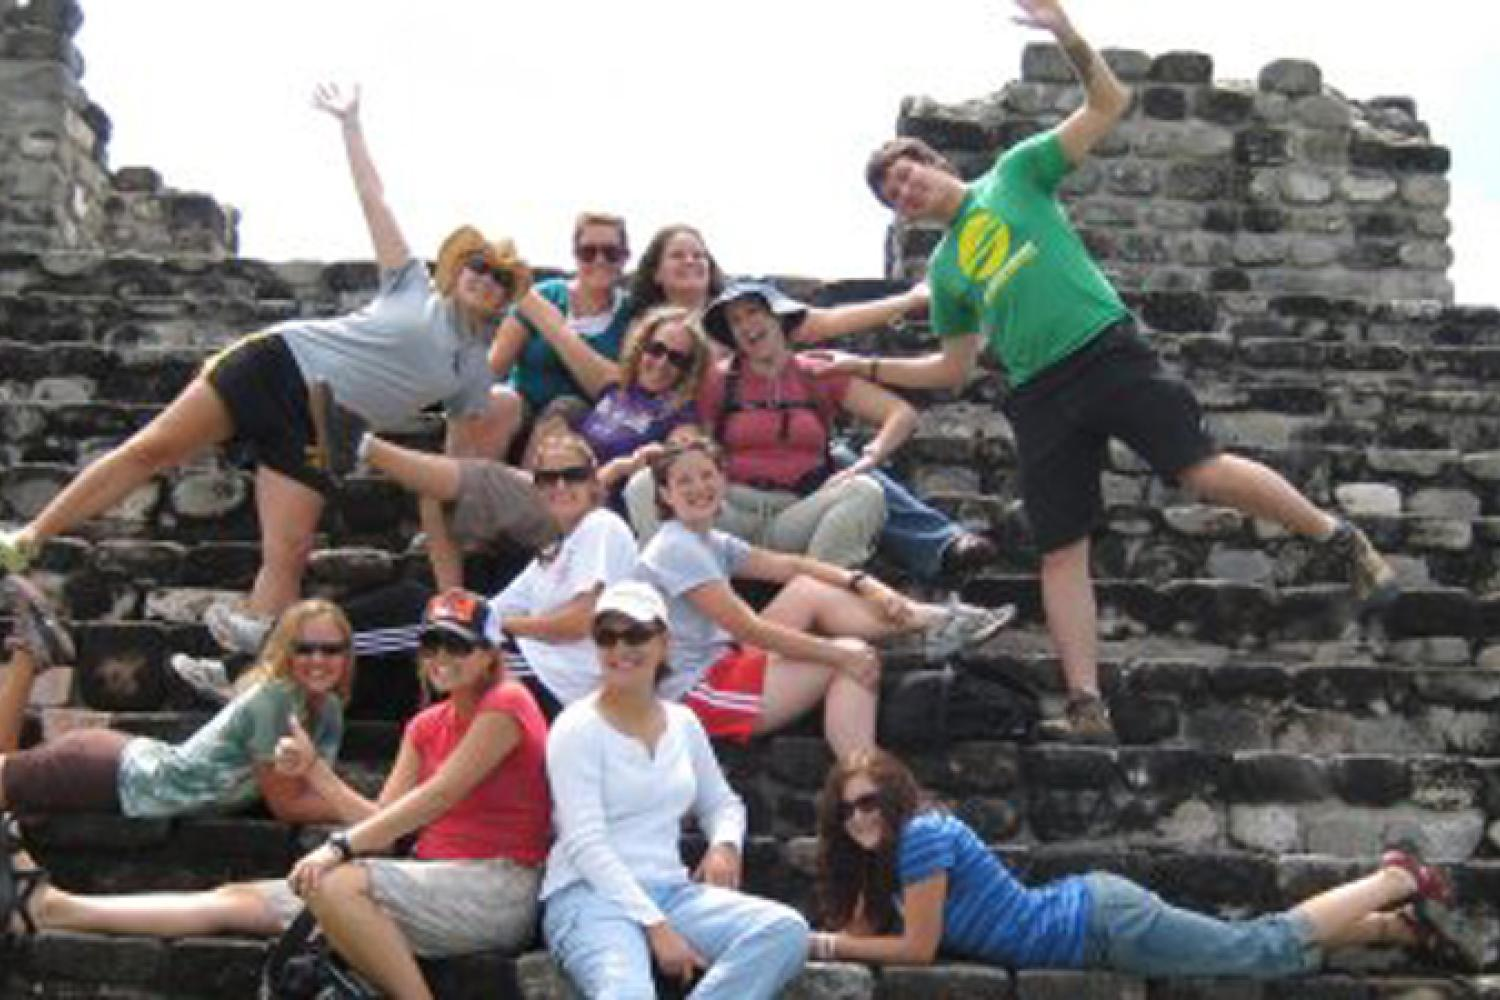 Group of students on some steps in Central America